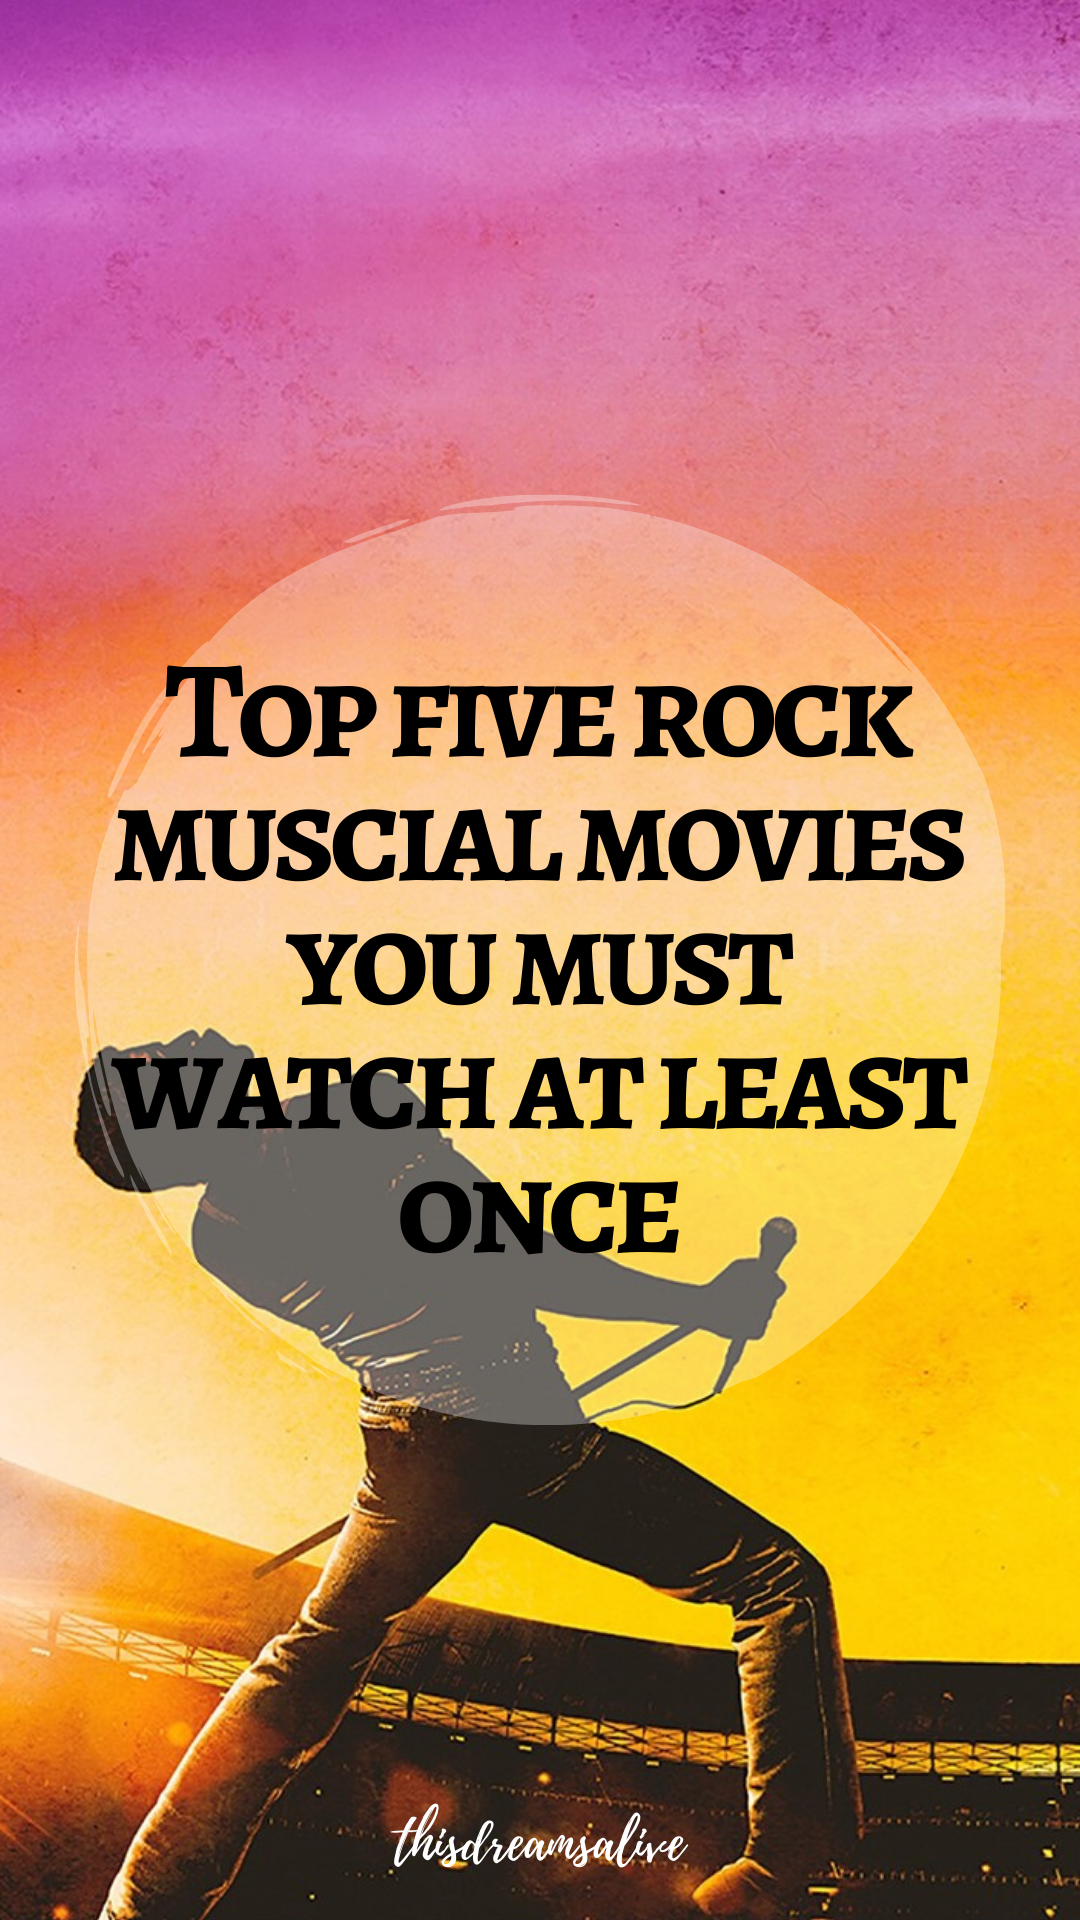 Top Five Rock Musical Movies Musical Movies Movies Musicals